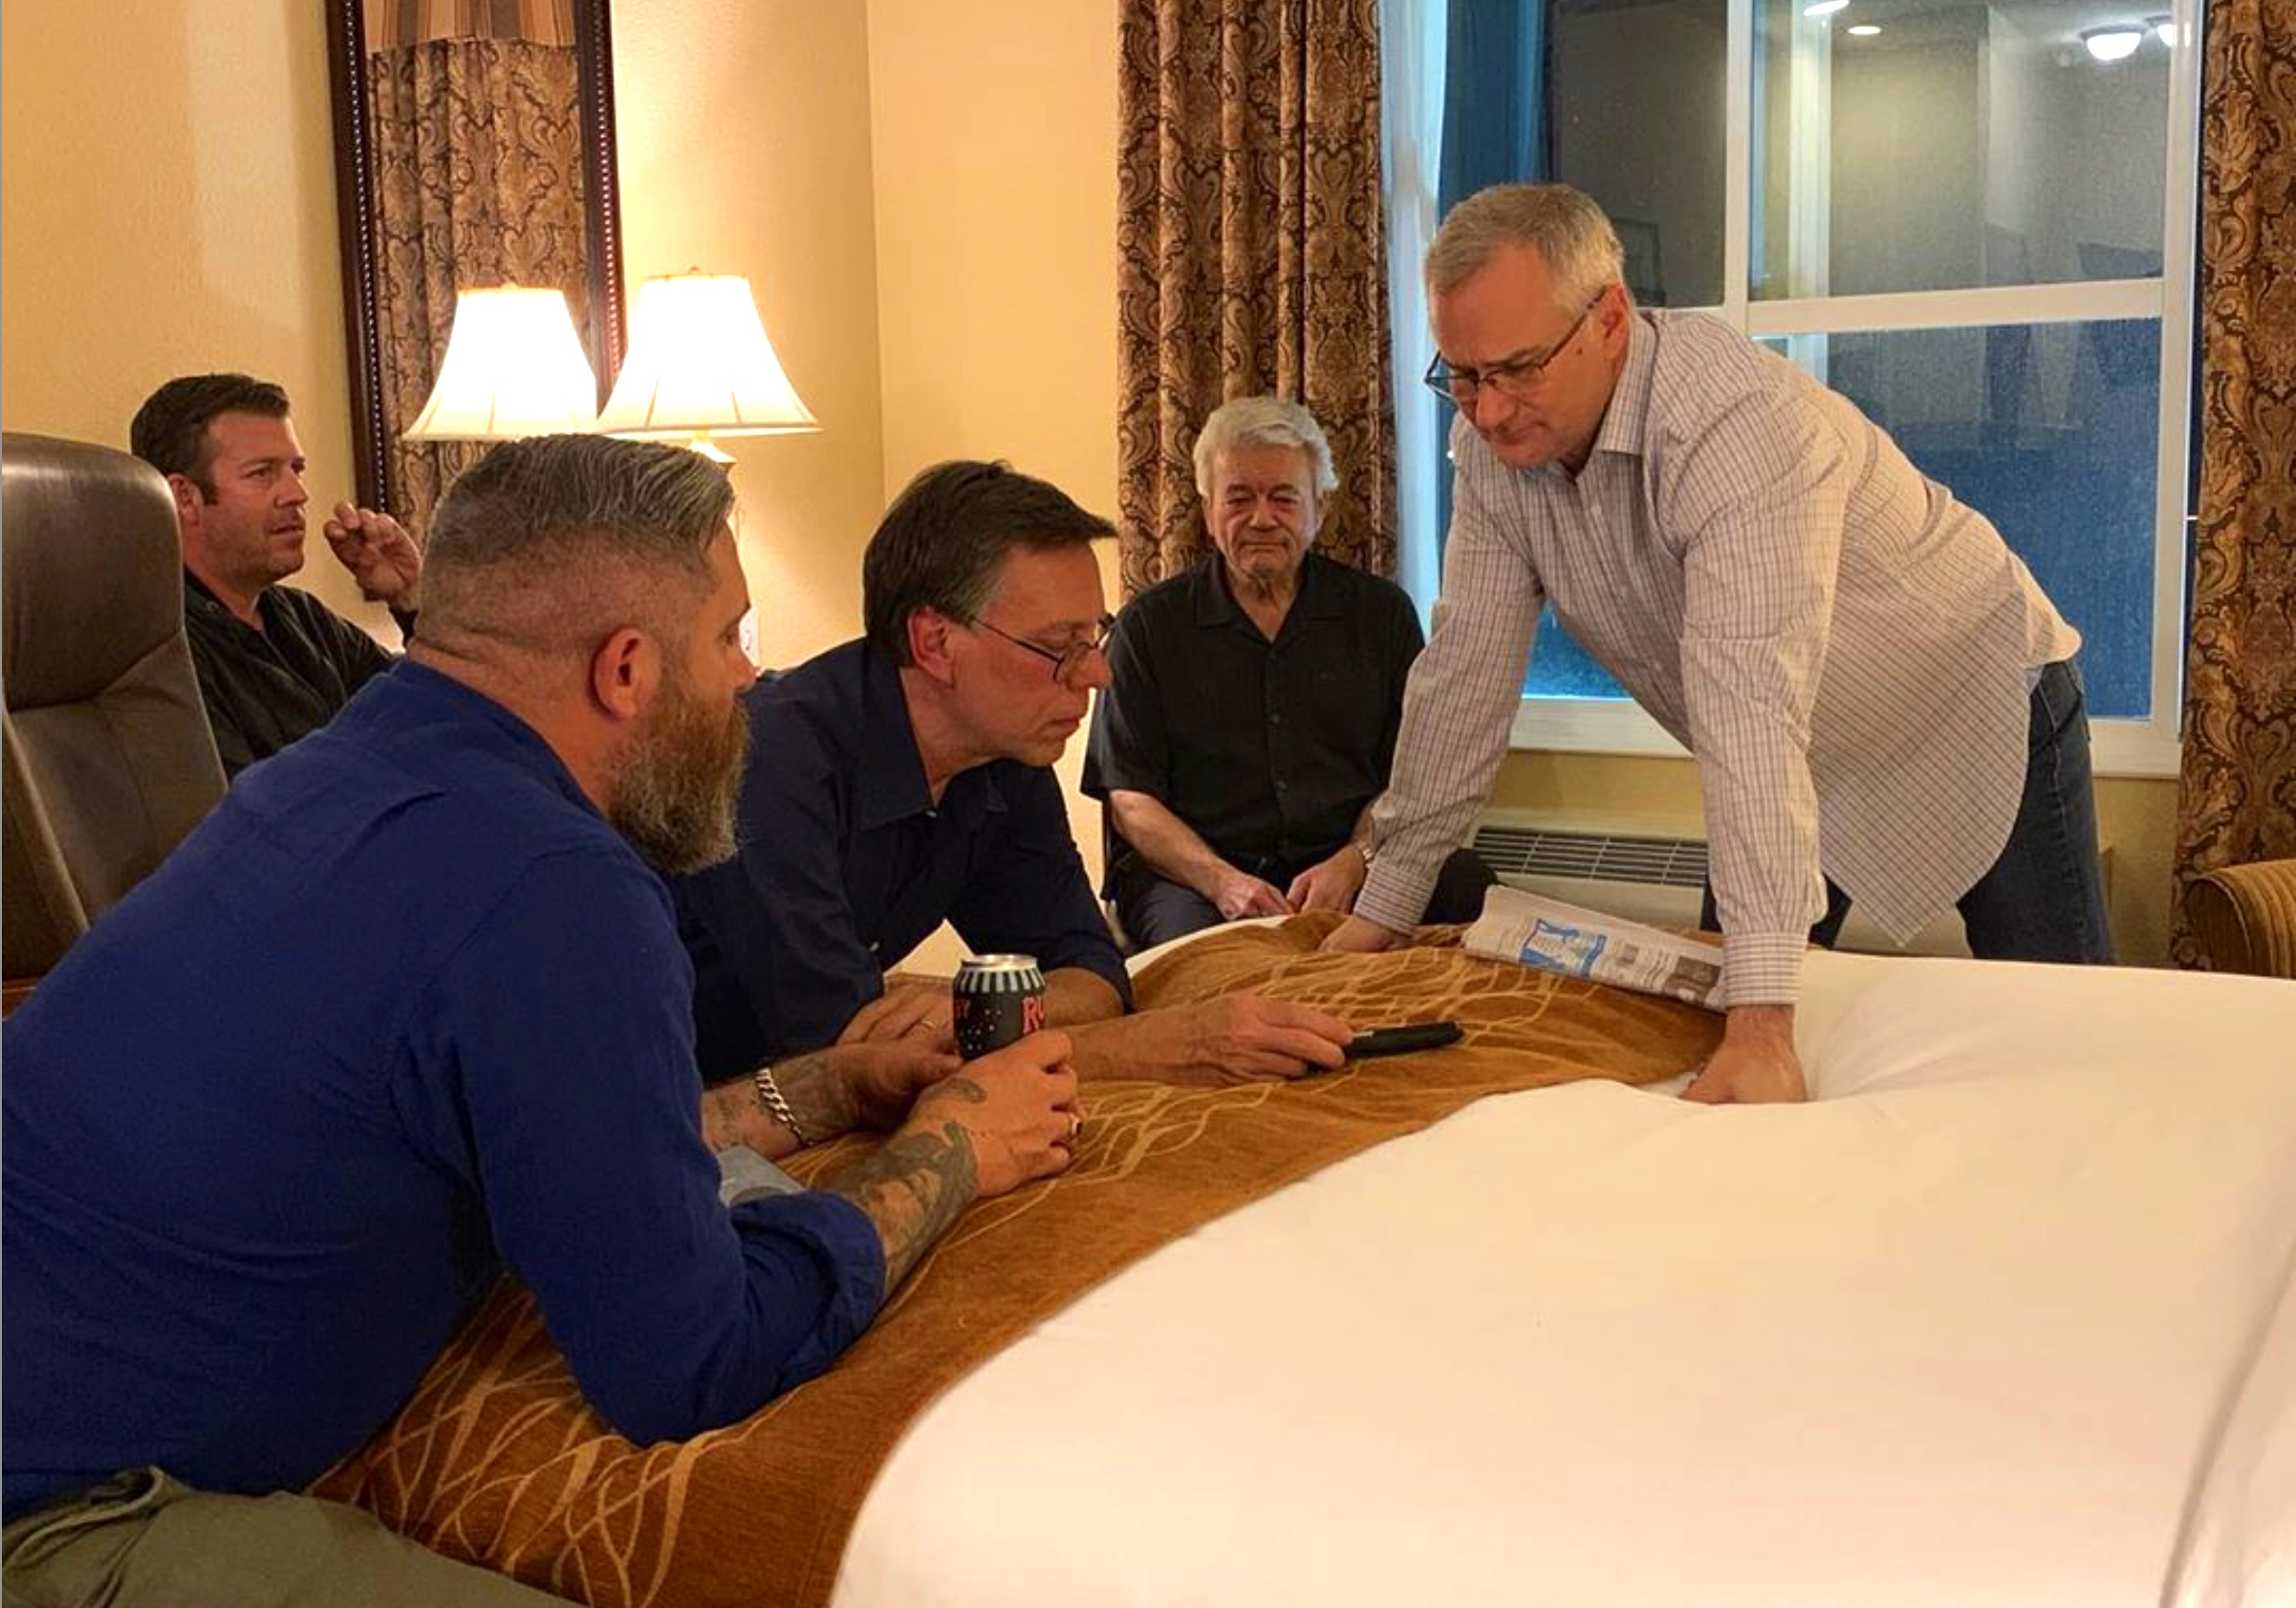 Reviewing UFO info with F-18 fighter pilot Commander Fravor at our hotel in McMinnville, Oregon.